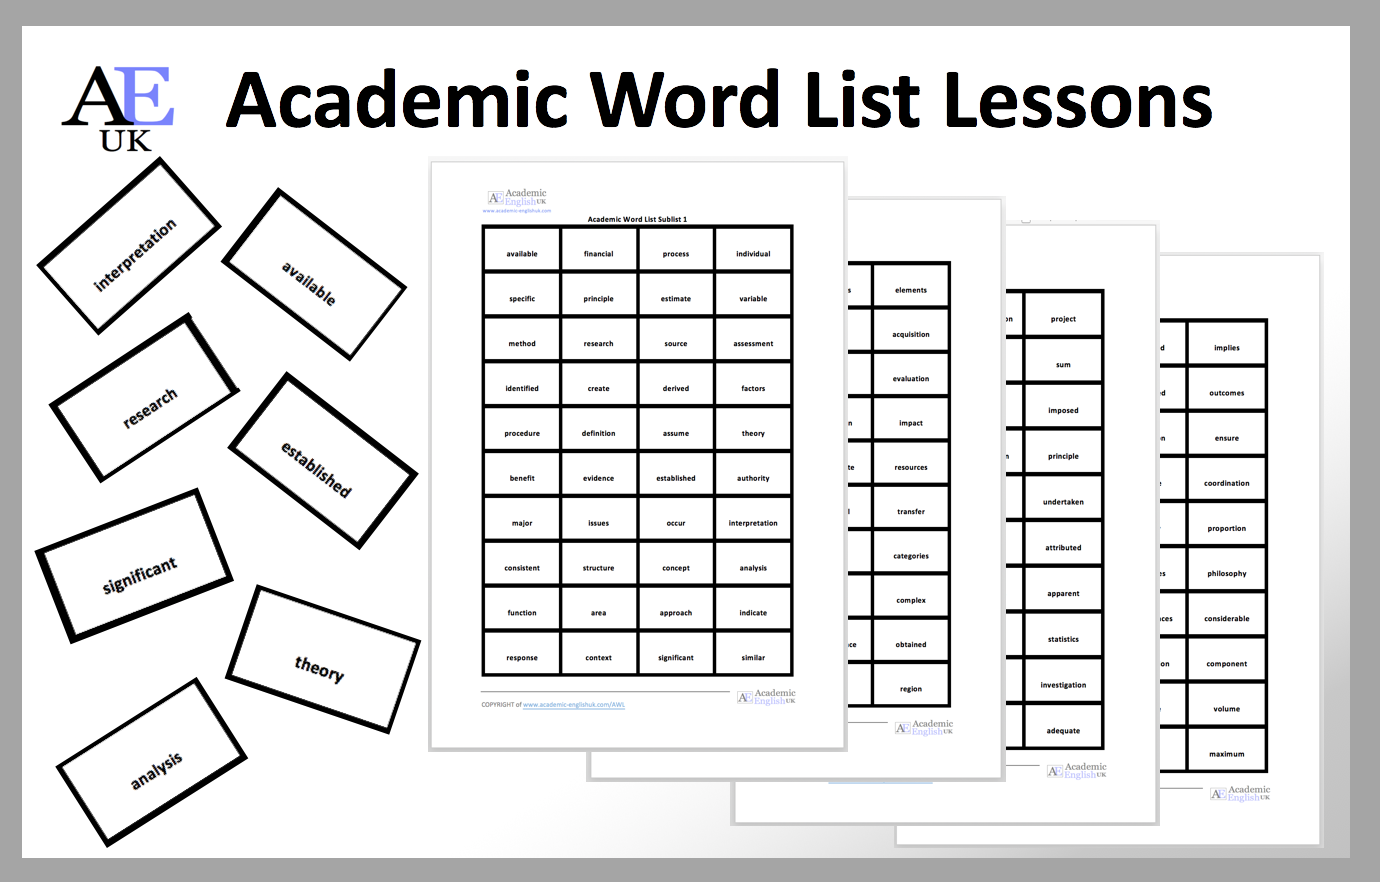 AWL Lesson words